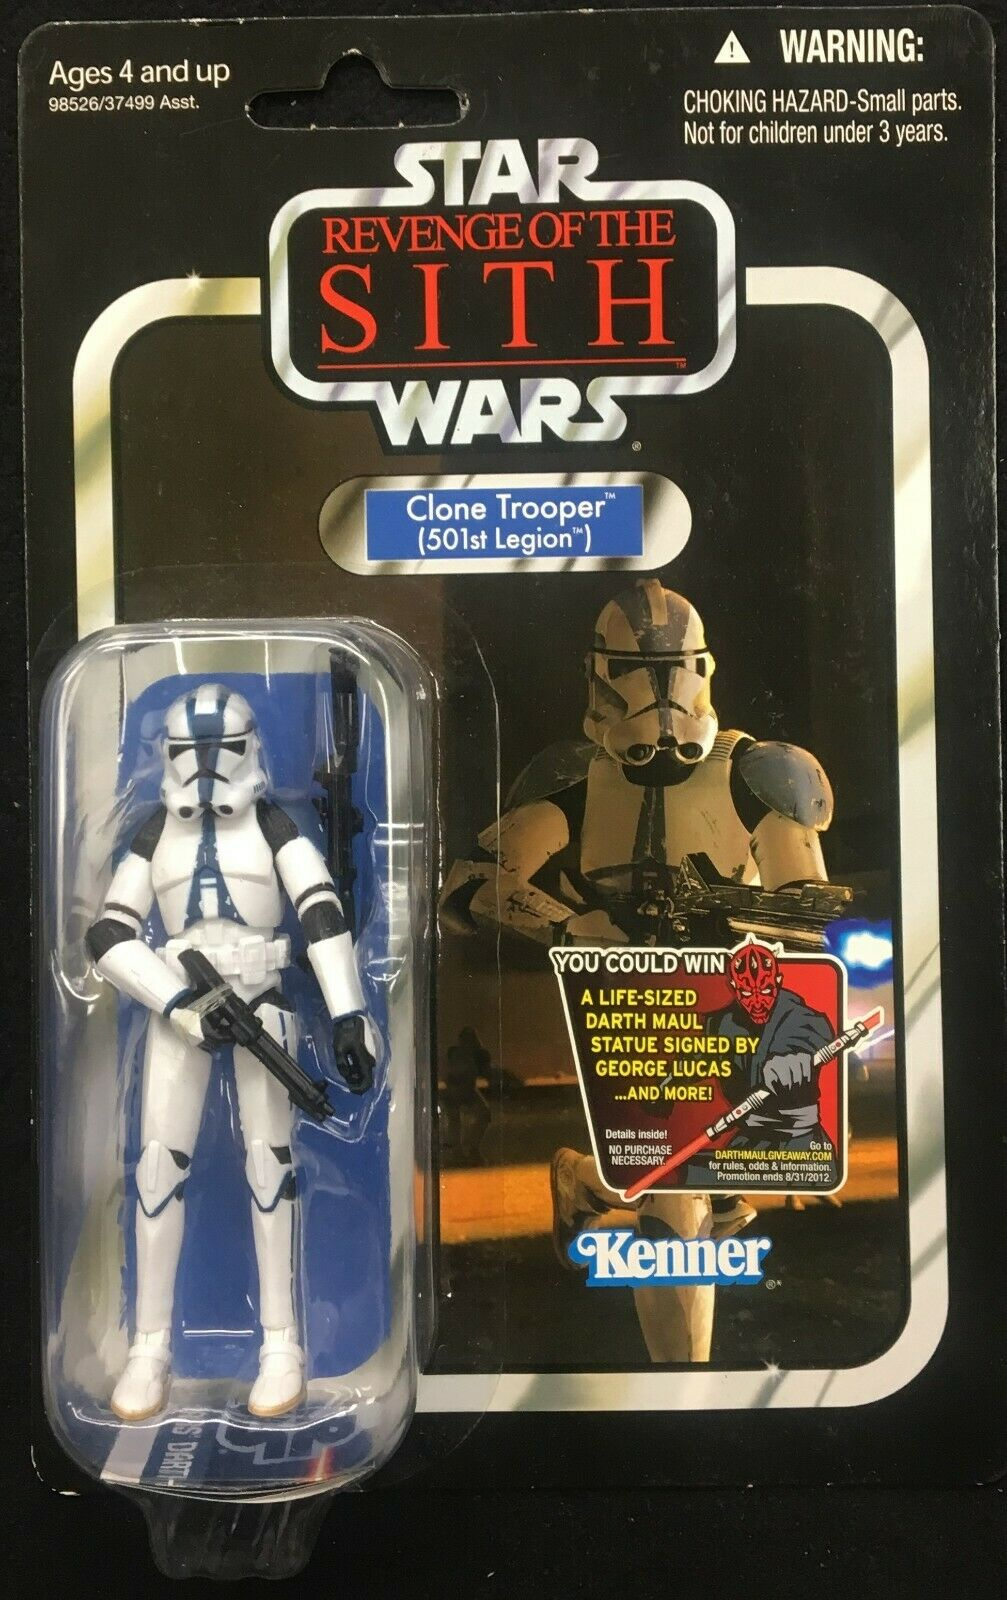 Star Wars Revenge Of The Sith Clone Trooper 501st Legion Vintage Collection Vc60